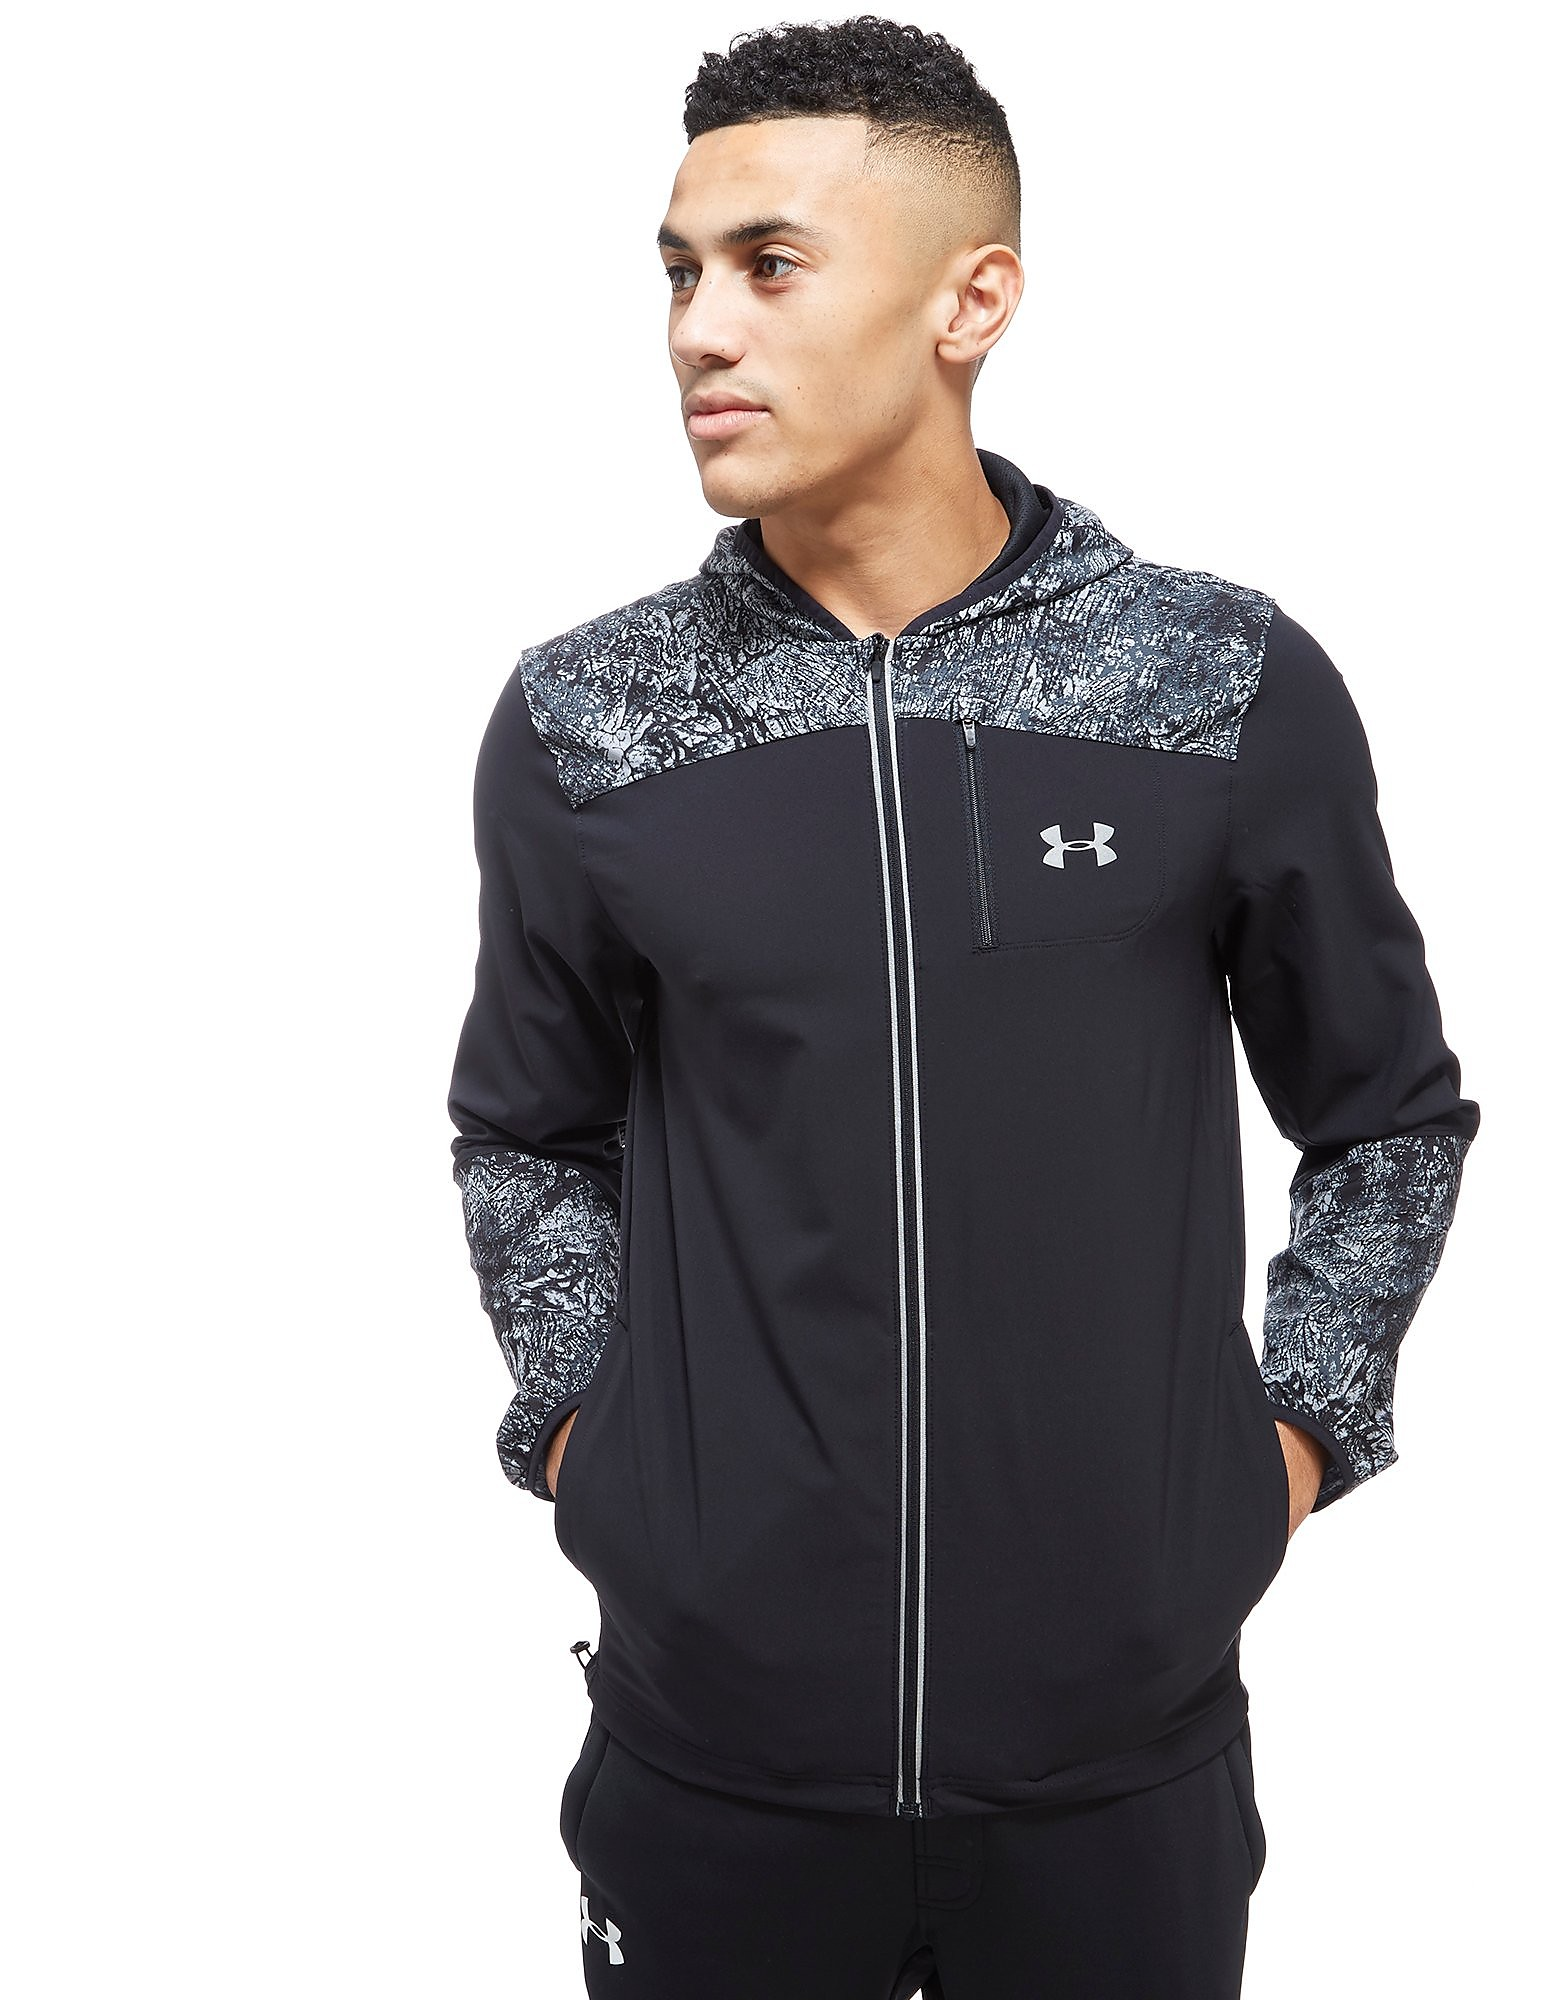 Under Armour Storm Lightweight Jacket